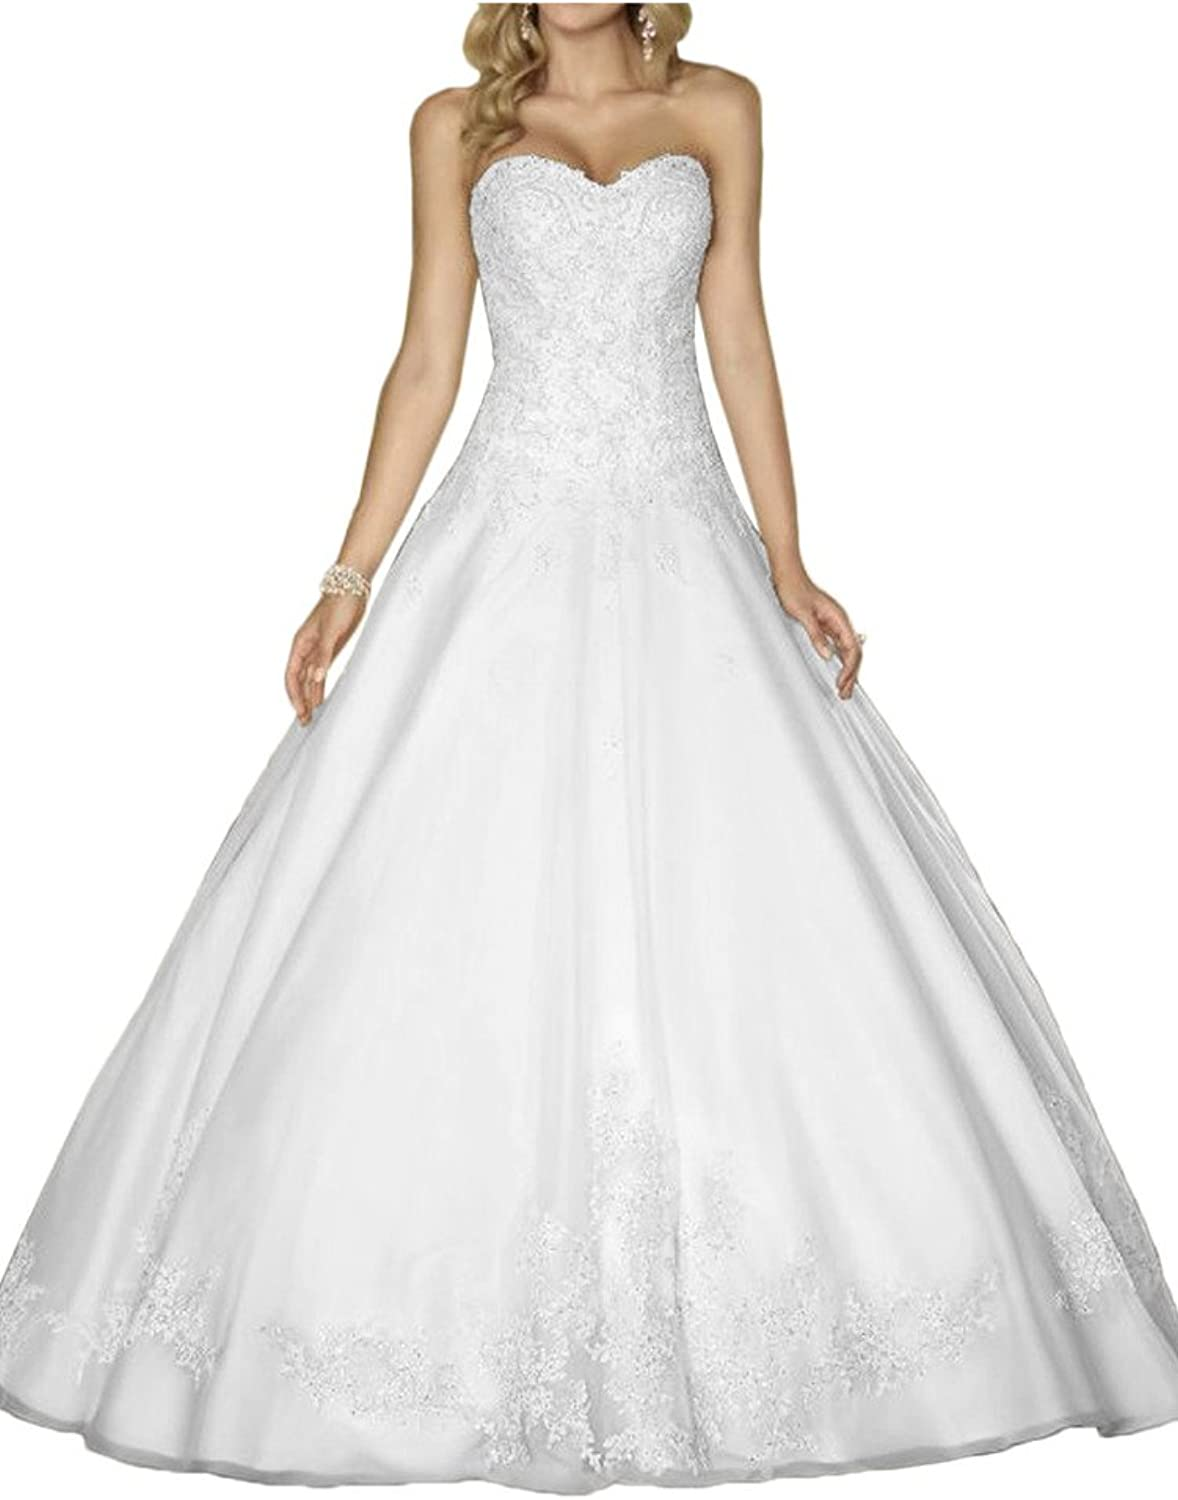 Avril Dress Simple Strapless Tulle Wedding Applique Lace Bridal Gown Lace up